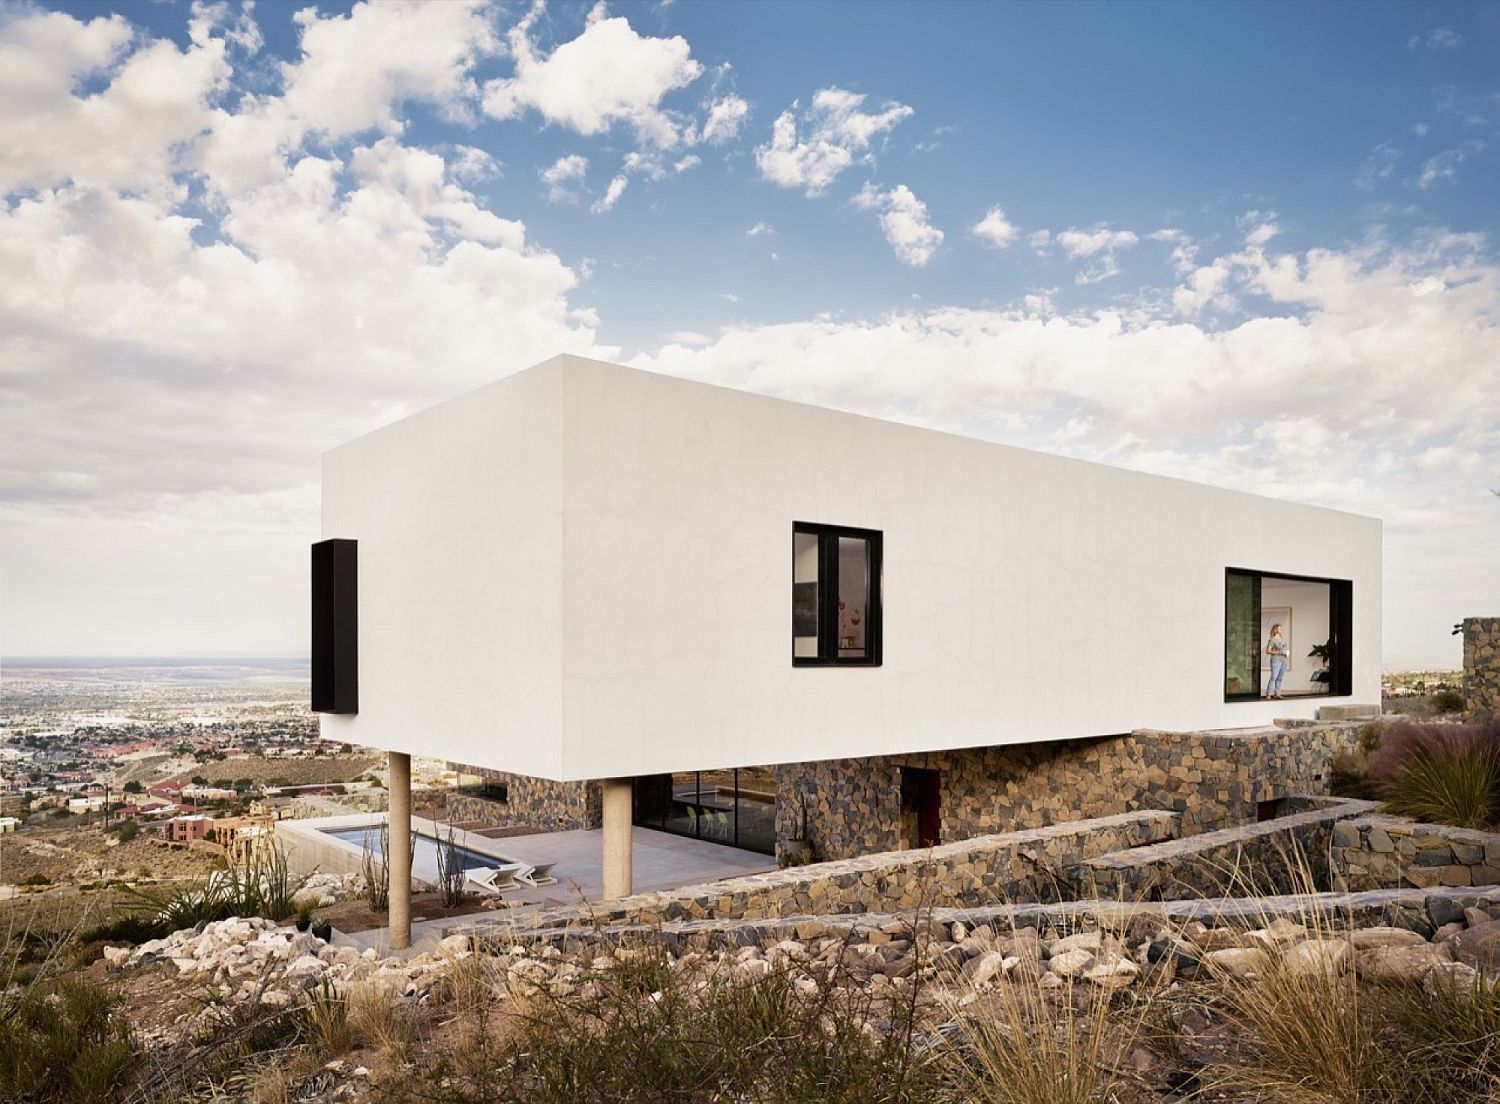 Striaght lines and a facade in white give the mountain home a contemporary look